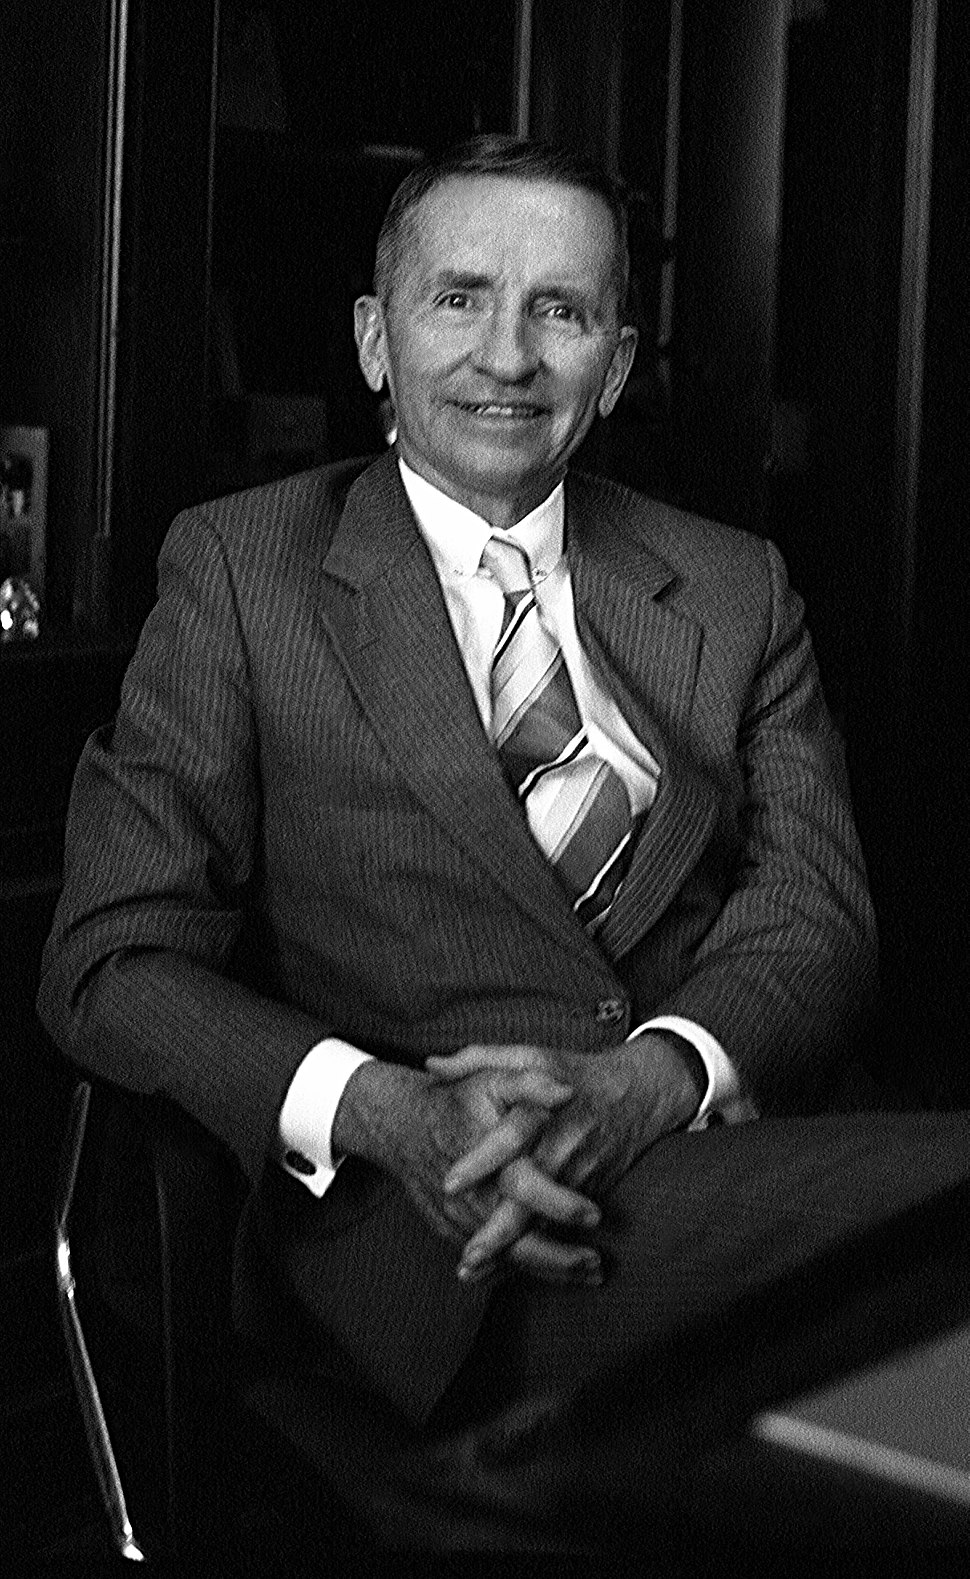 Ross Perot 7 Allan Warren